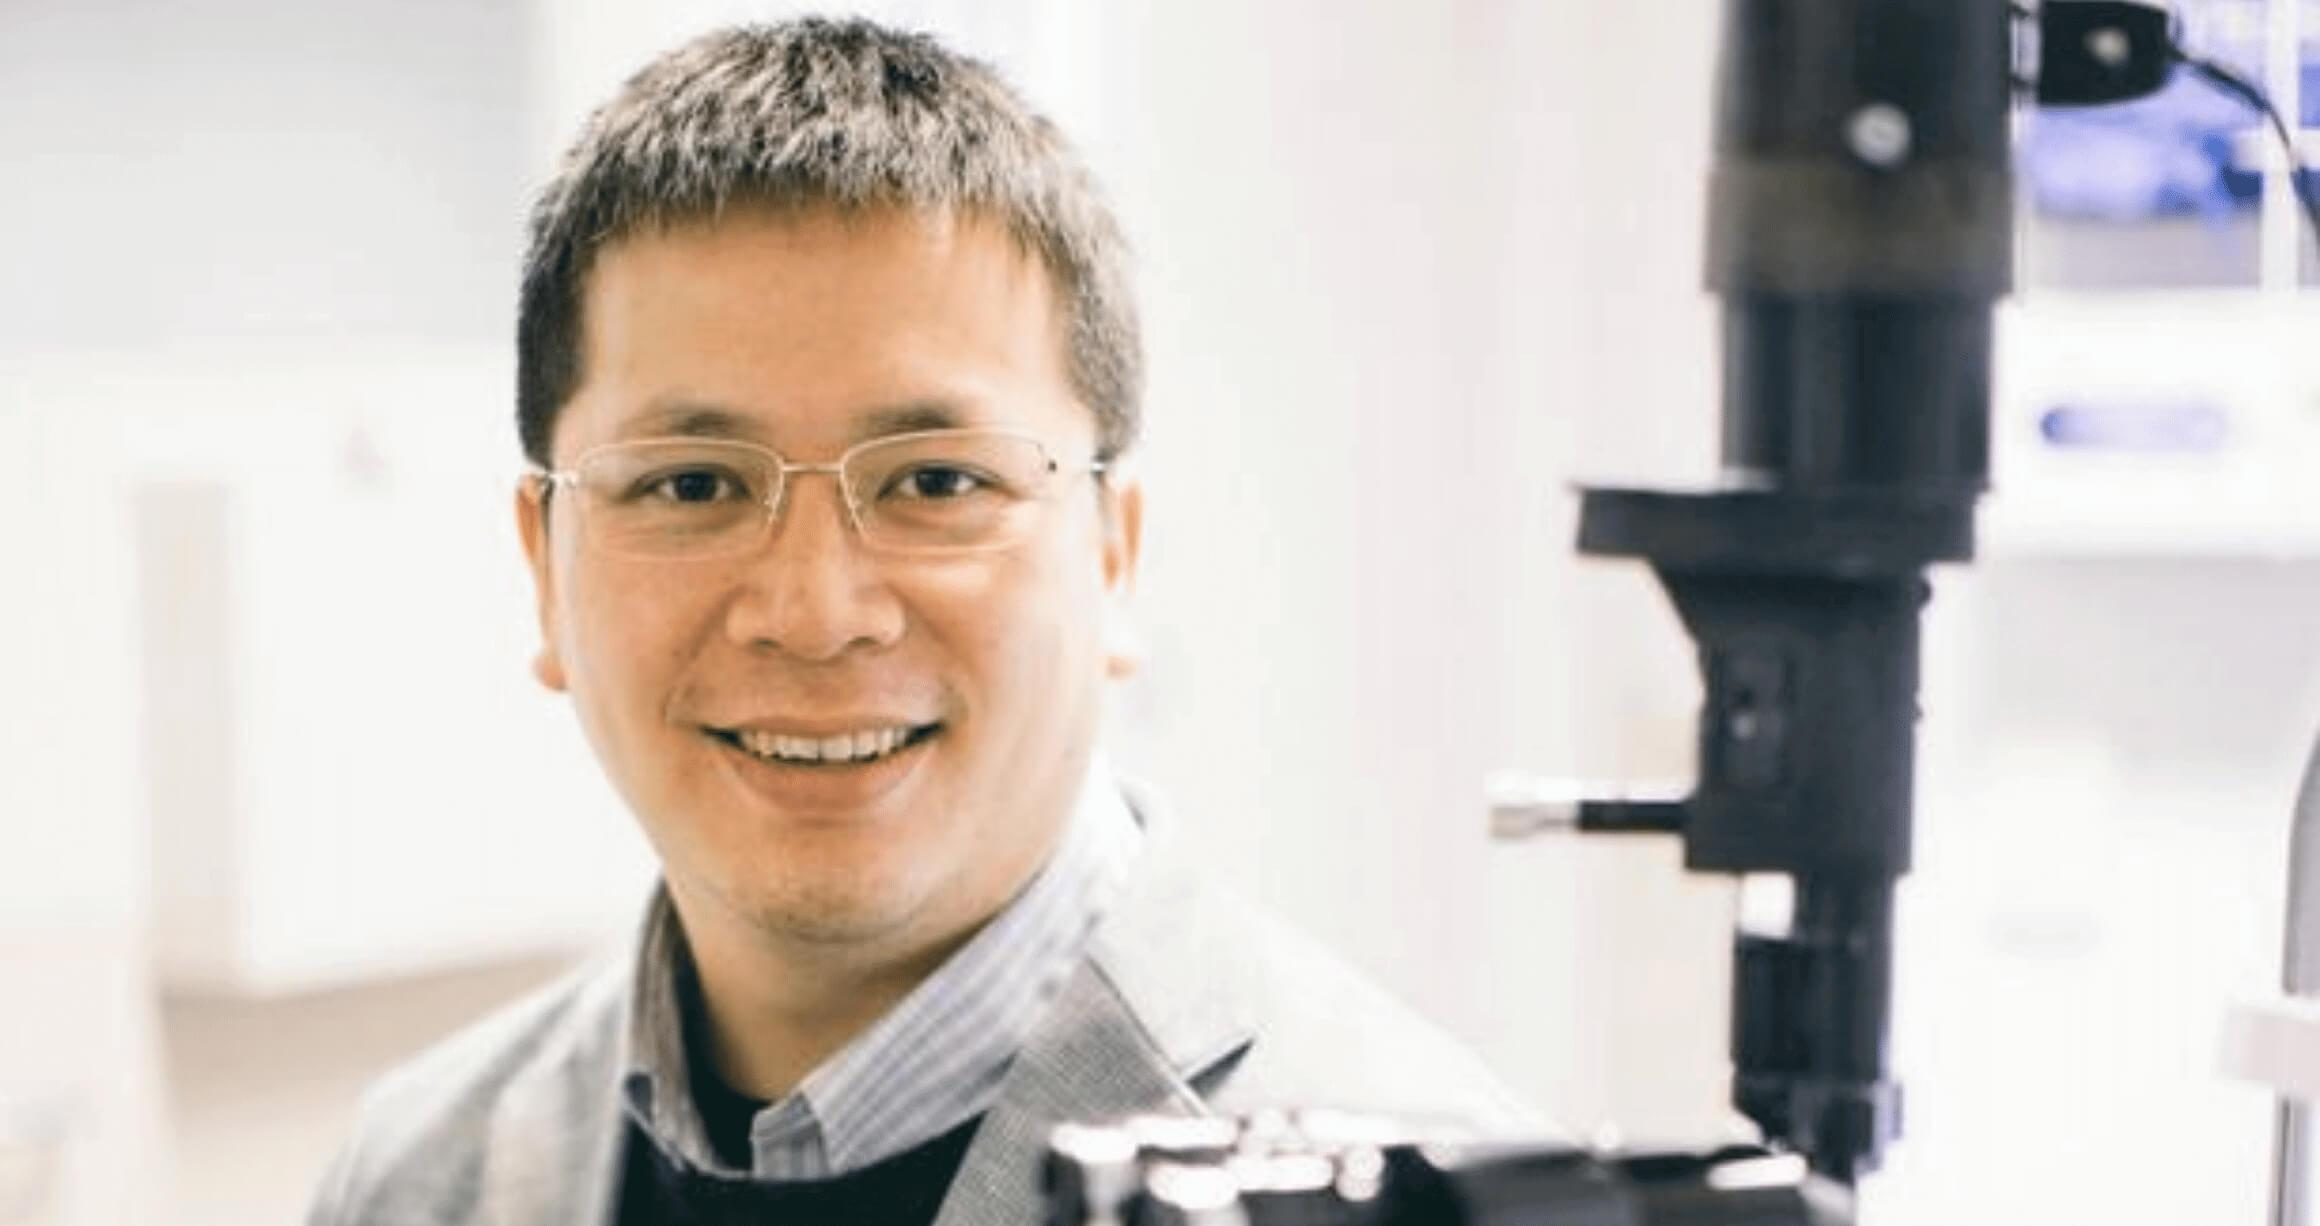 image of male doctor sitting in lab wearing coat and glasses with large microscope